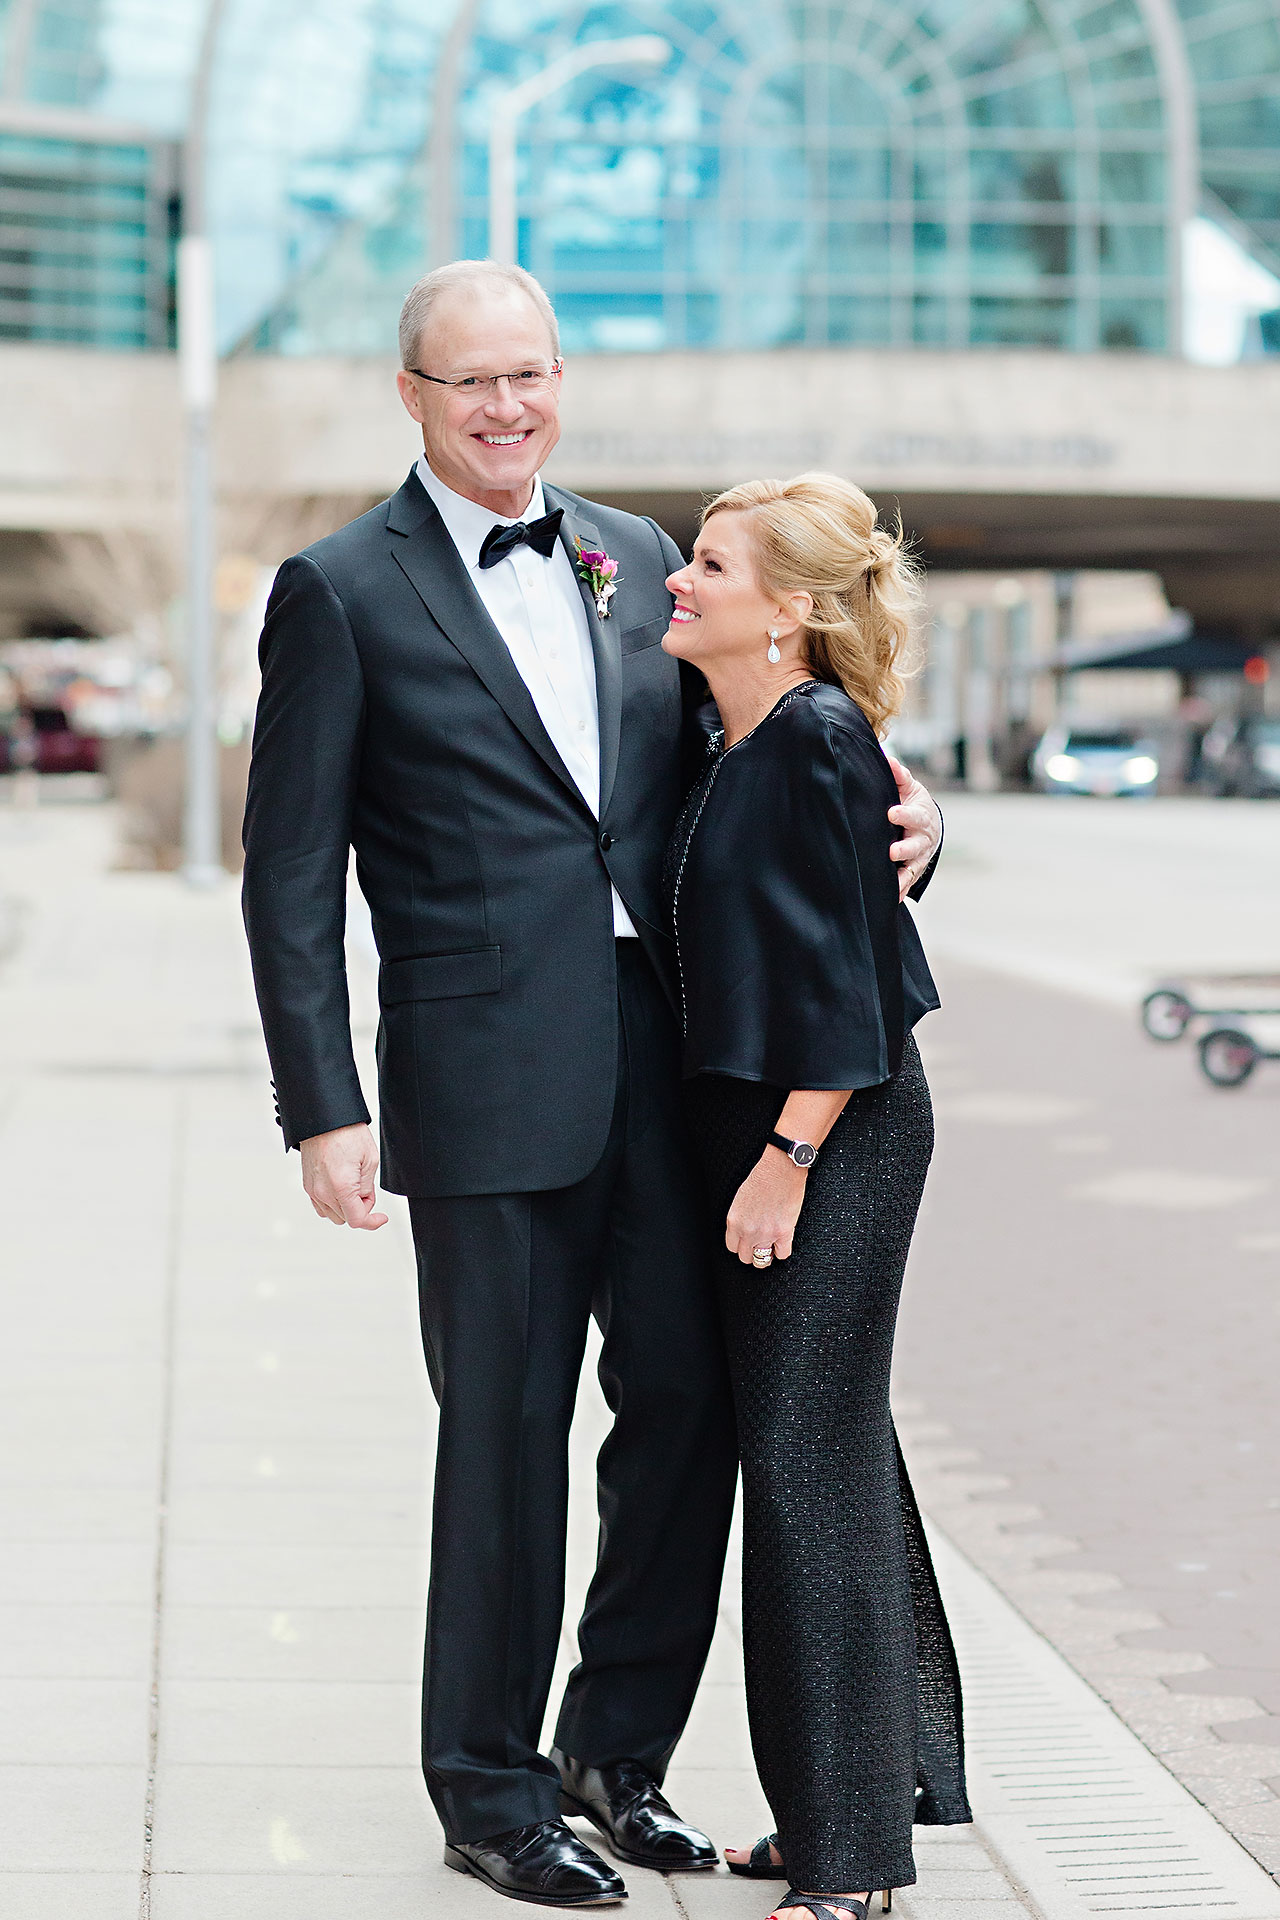 Marianne Steven Indianapolis Central Library Wedding 085